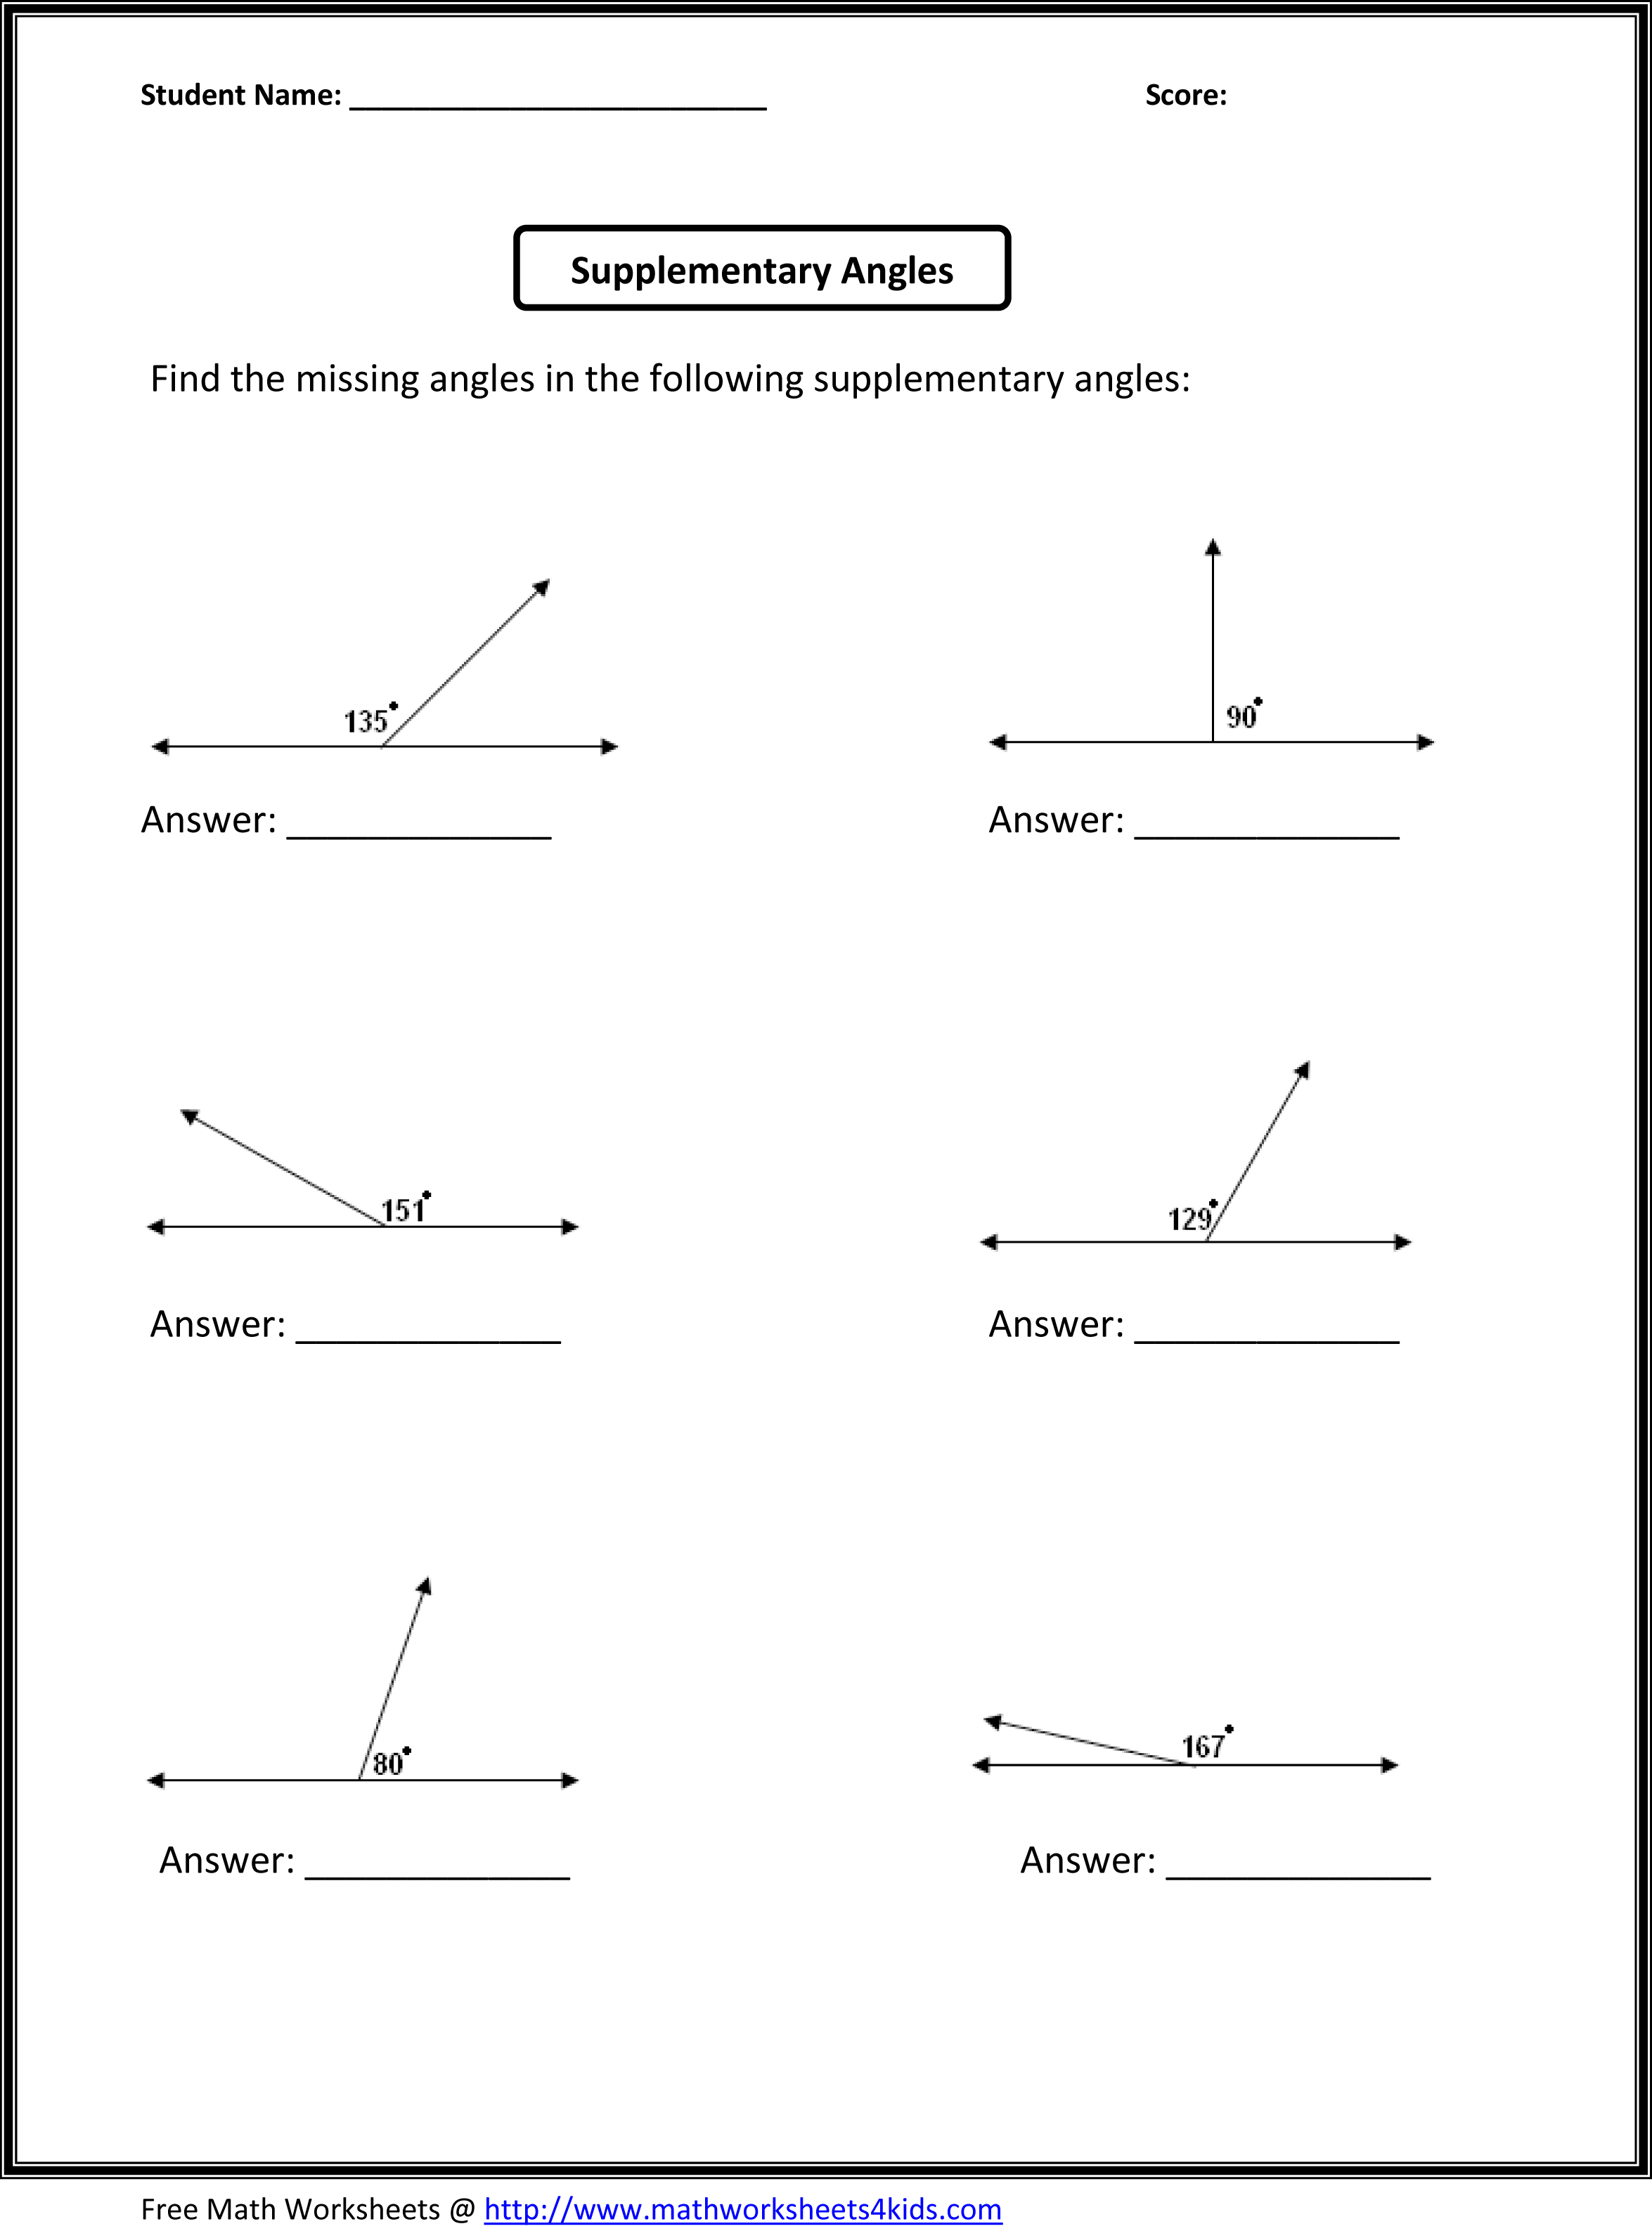 Math Worksheets For Grade 6 Math Worksheets 4th Grade Area 6 Math – Maths Worksheets Pdf